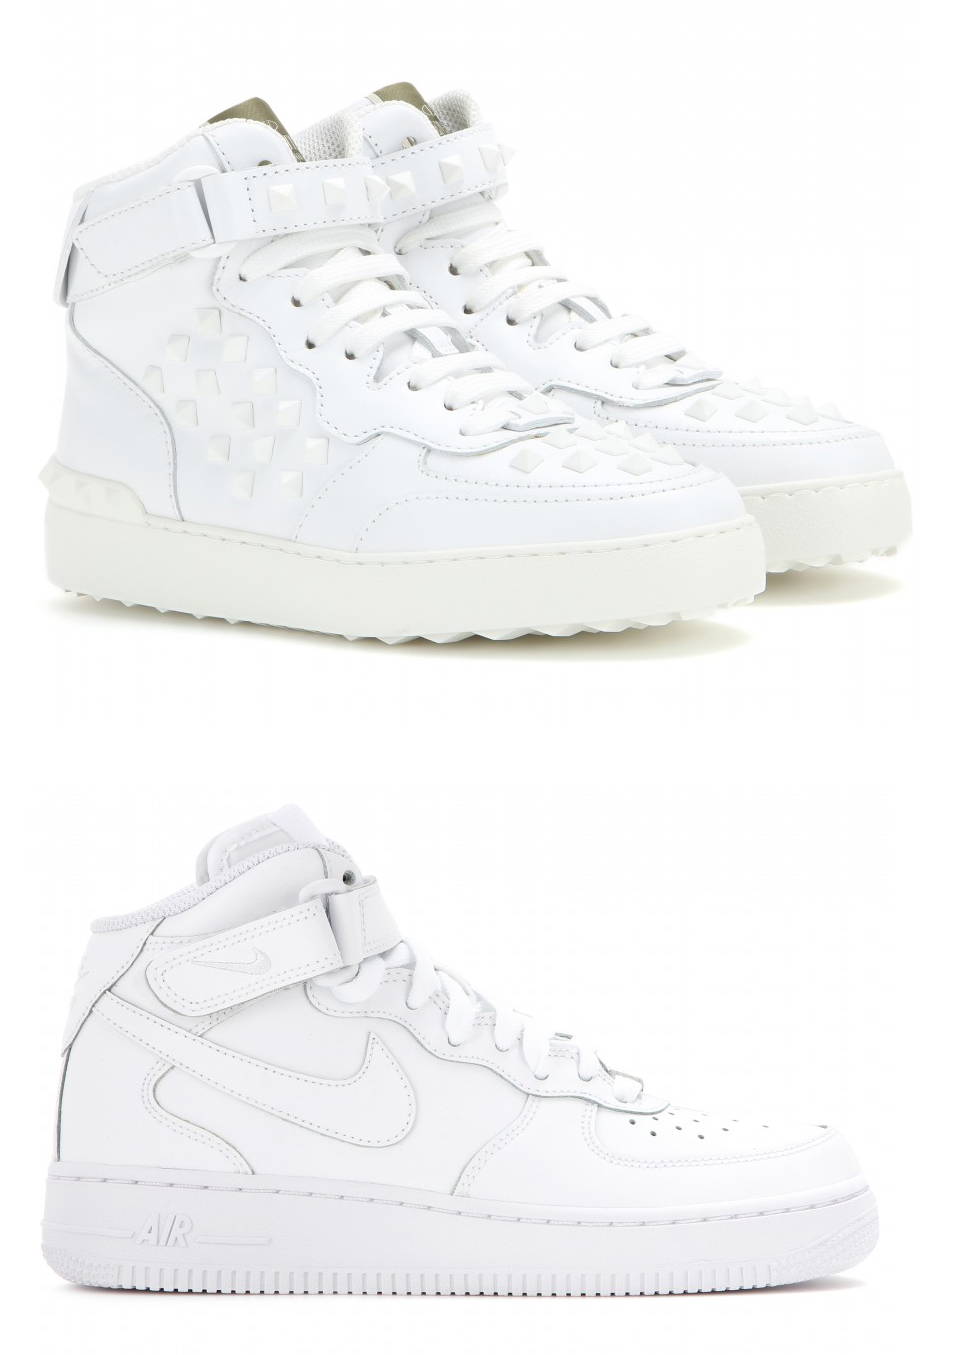 974x1355 Valentino Takes On Nike Air Force 1 High Top Sneakers